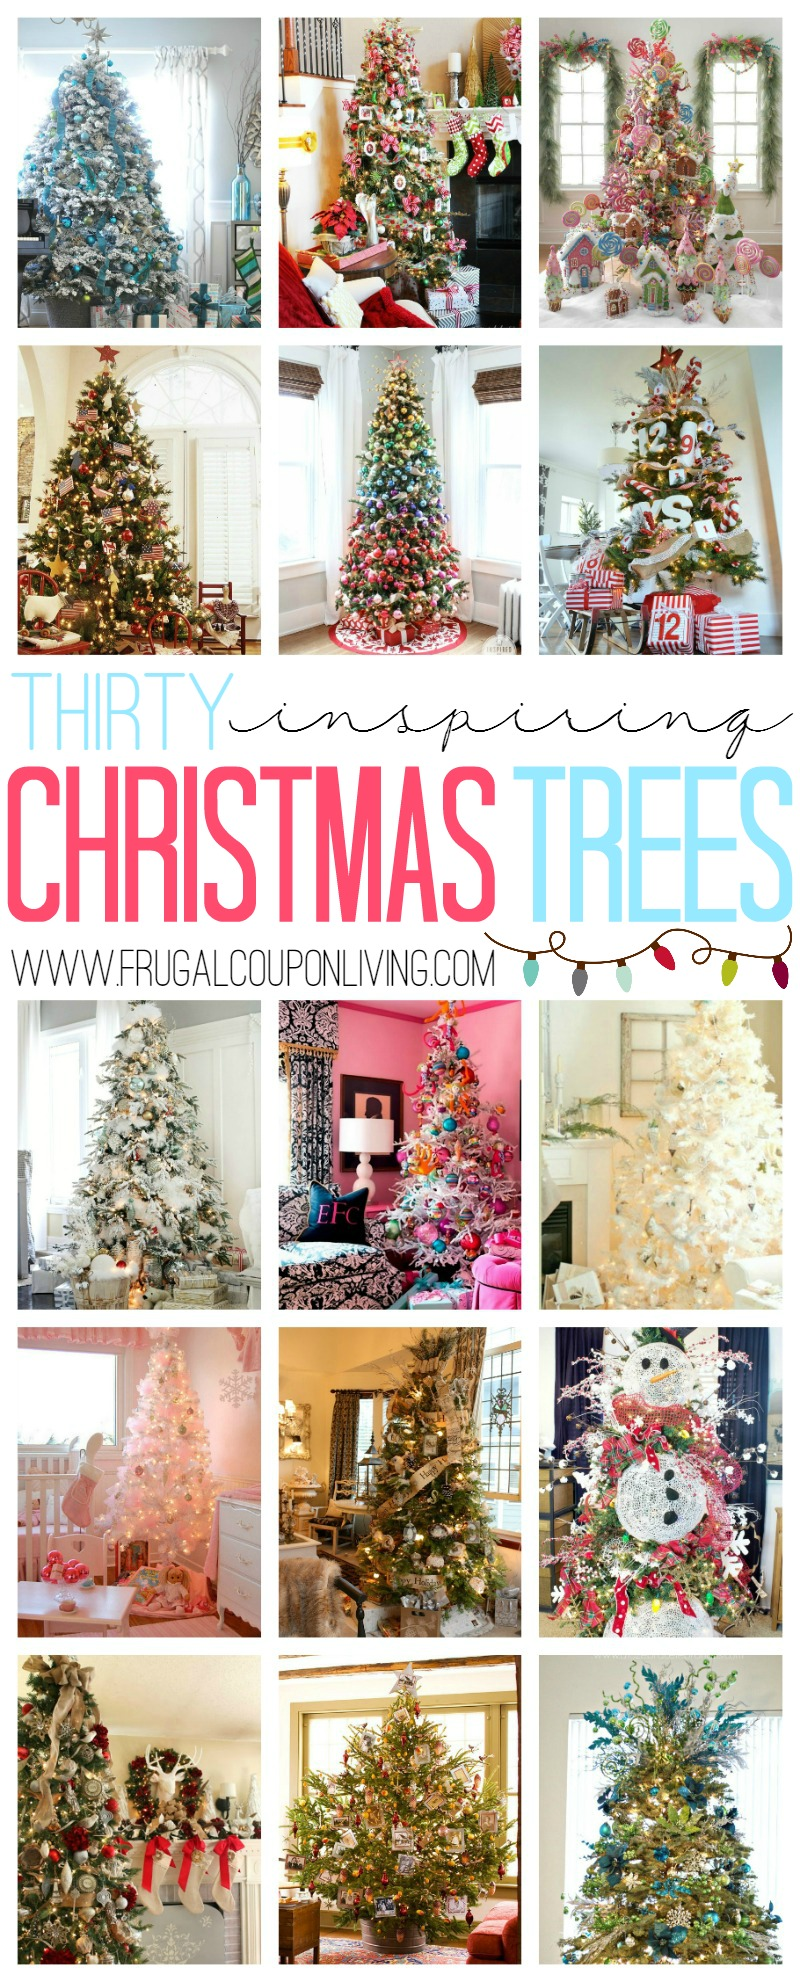 30 Inspiring Christmas Tree Ideas on Frugal Coupon Living